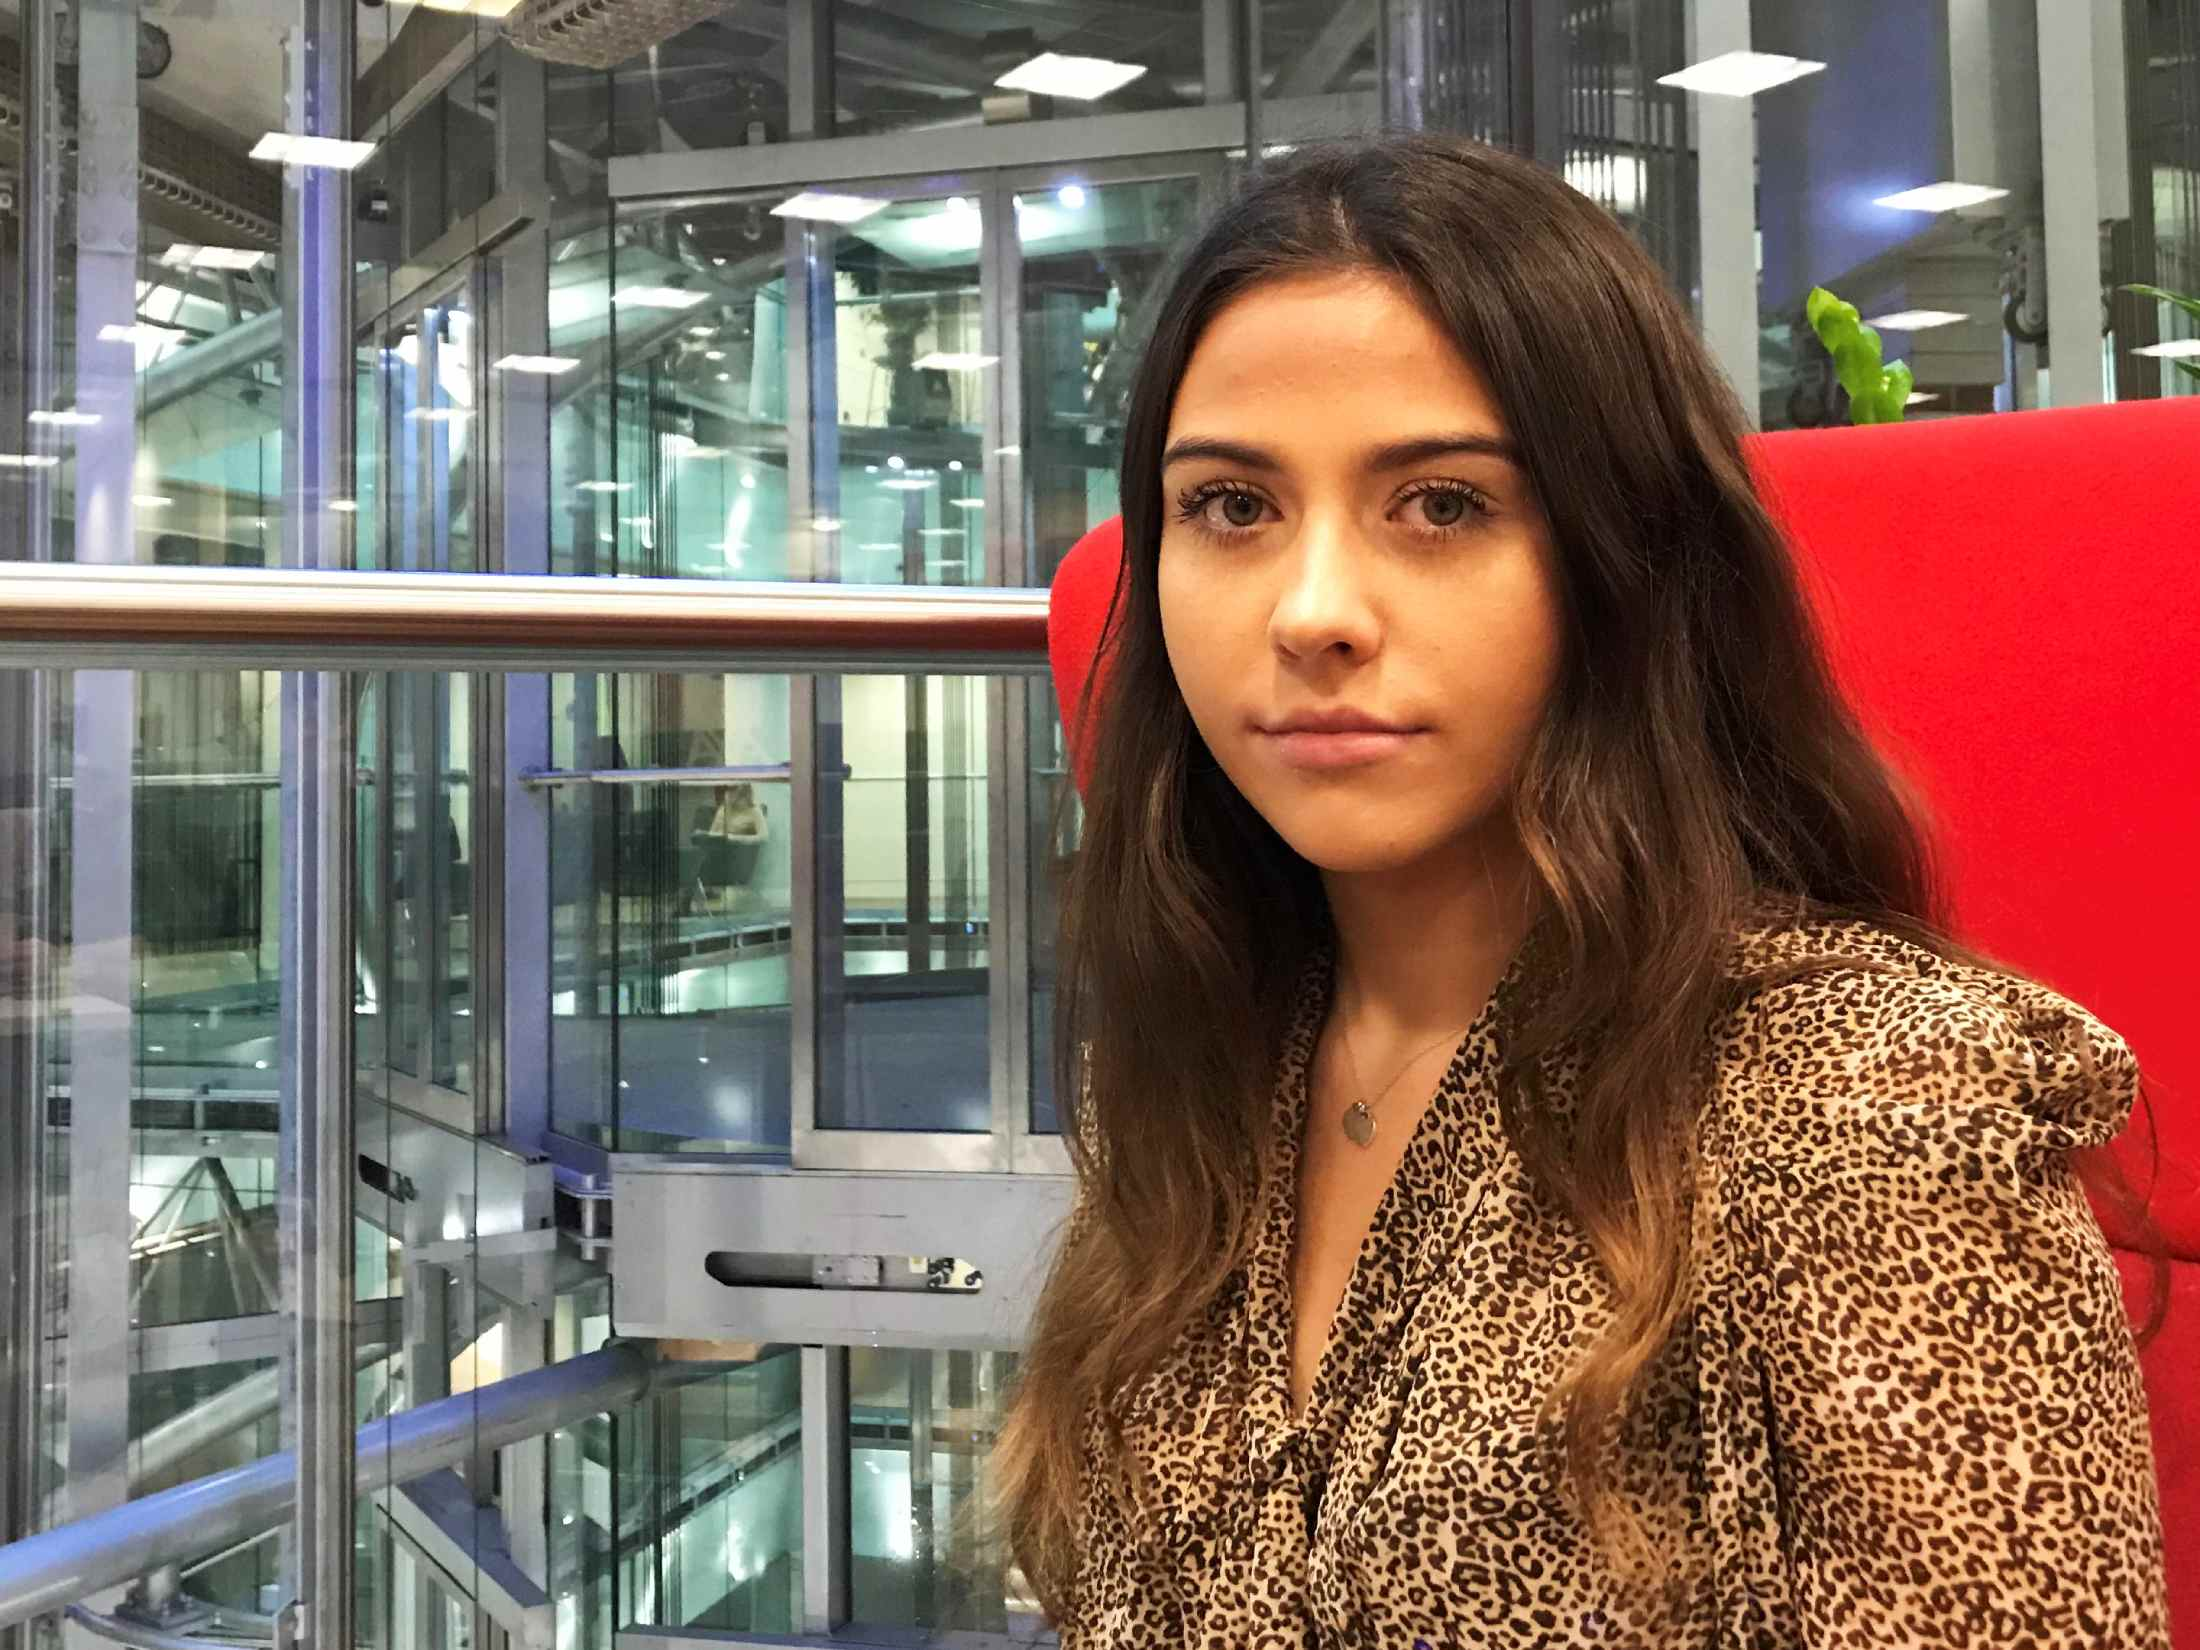 Mia Simpson, PR Apprentice, sat at in a red chair in AXA's London Office on Old Broad Street